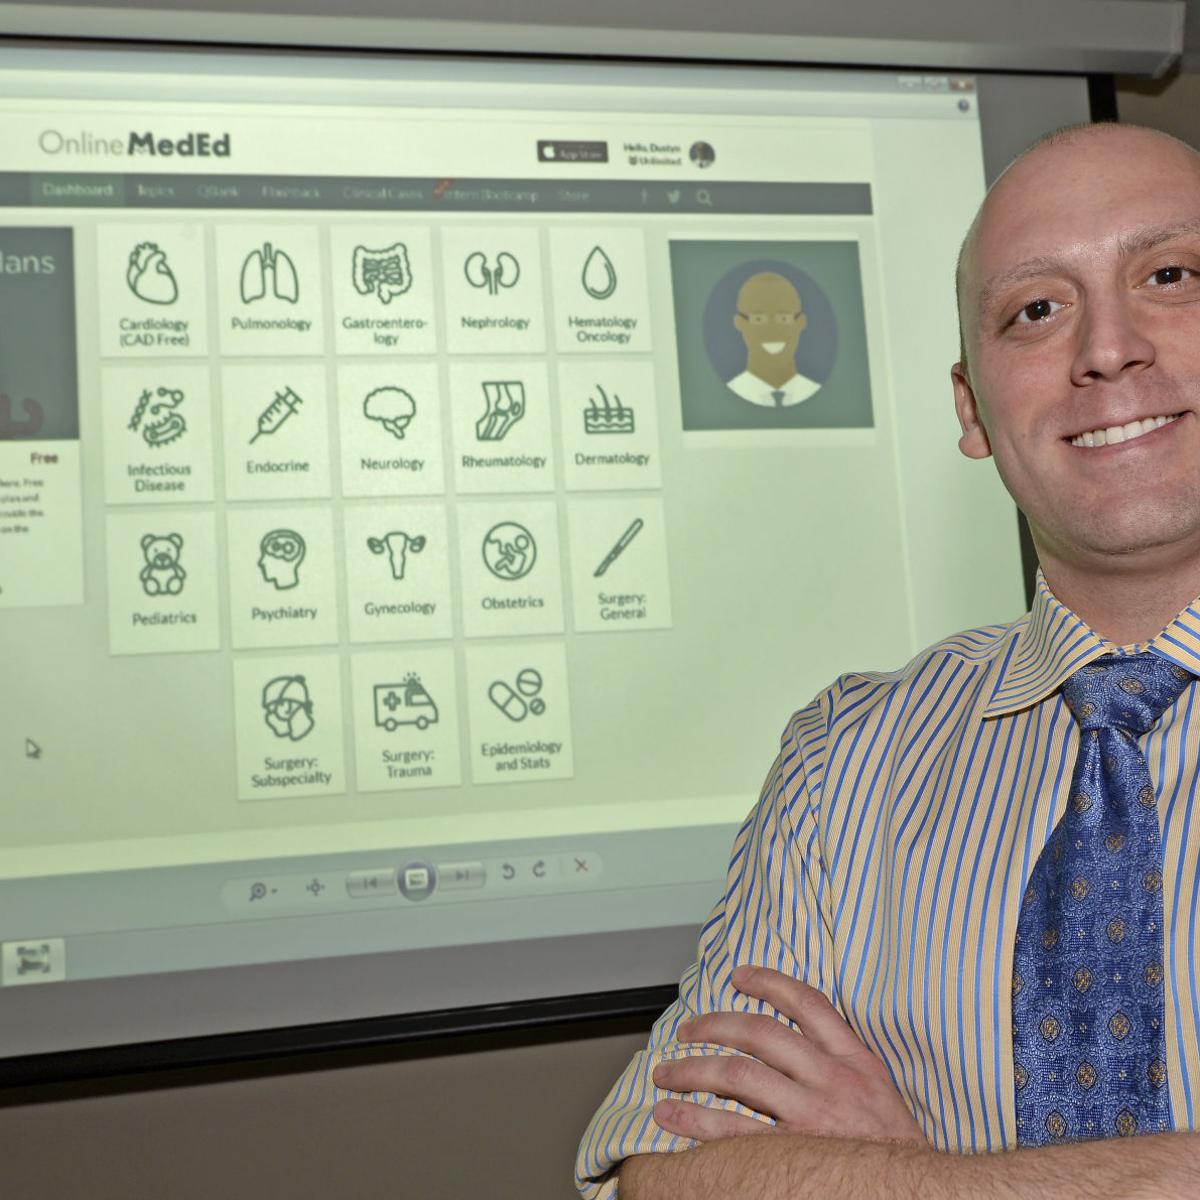 OnlineMedEd helping medical students prepare for future